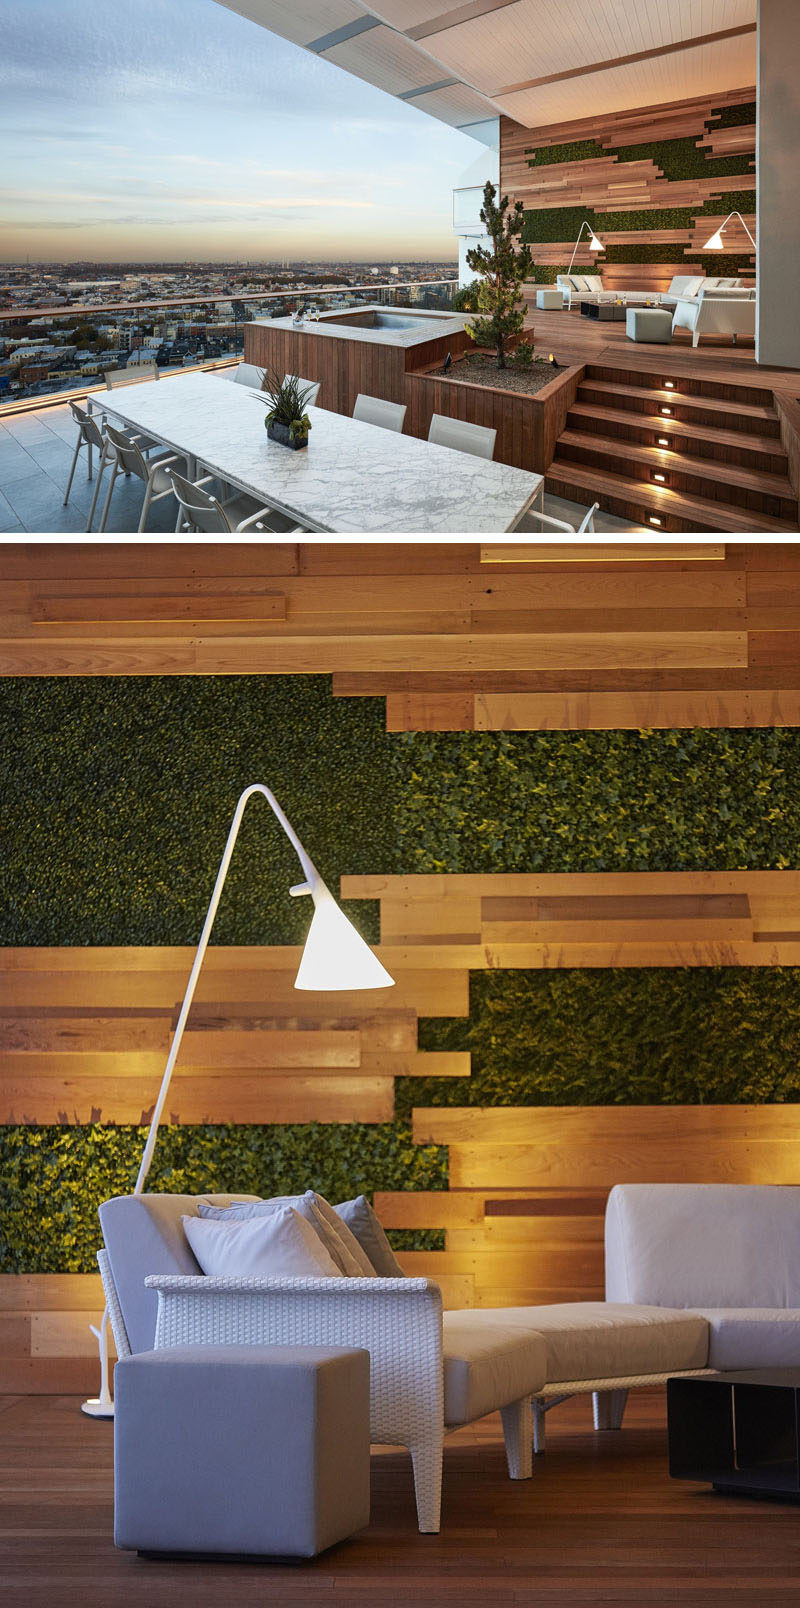 This large modern furnished balcony features an elevated seating area with a feature wall made from wood strips and patches of plants as well as an white and grey outdoor lounge with floor lamps.